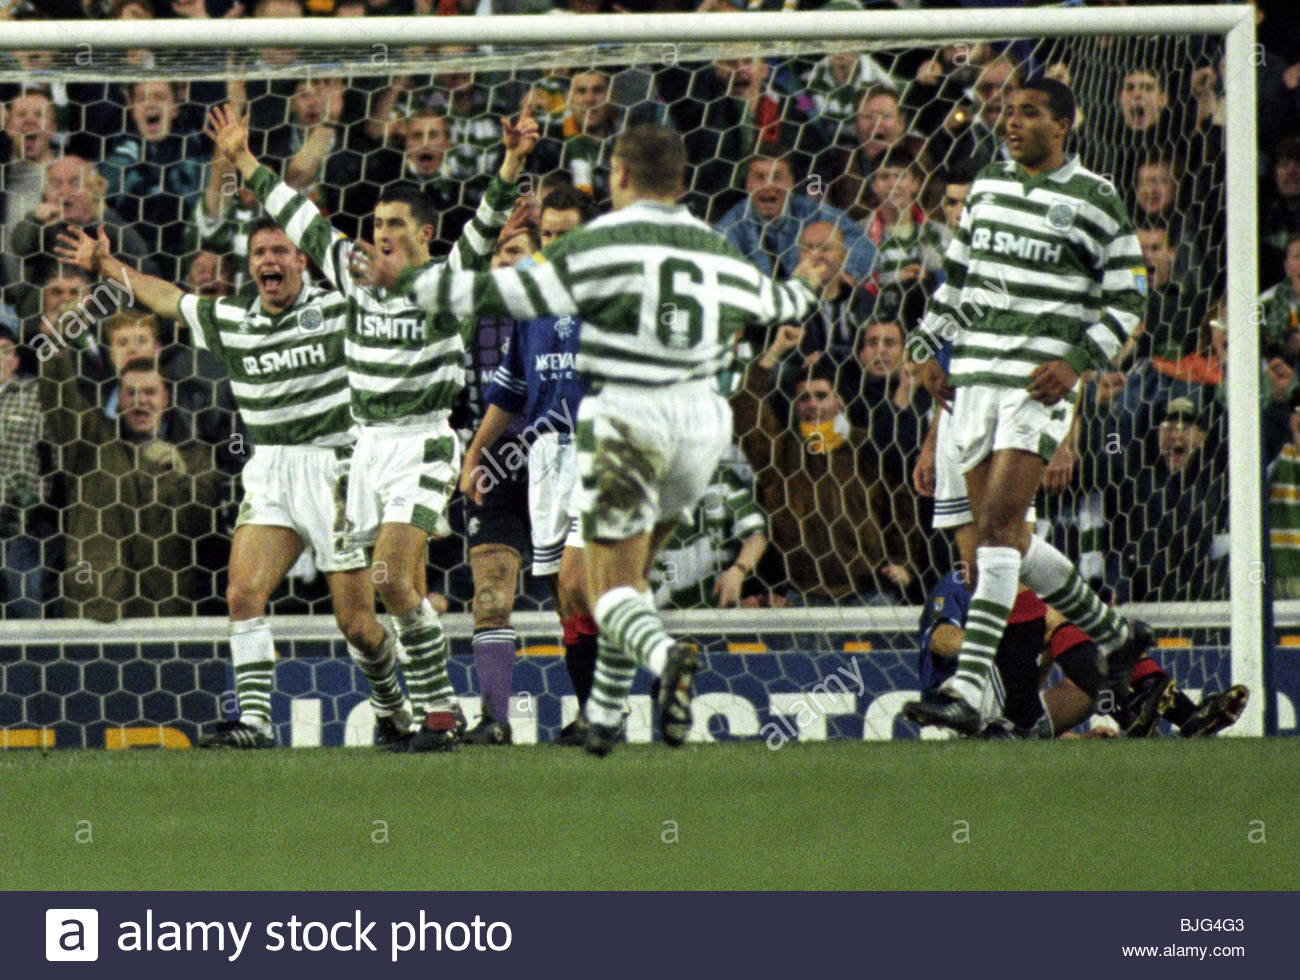 19/11/95 BELL'S PREMIER DIVISION RANGERS V CELTIC (3-3) IBROX - GLASGOW The Celtic players appeal for a penalty - Stock Image